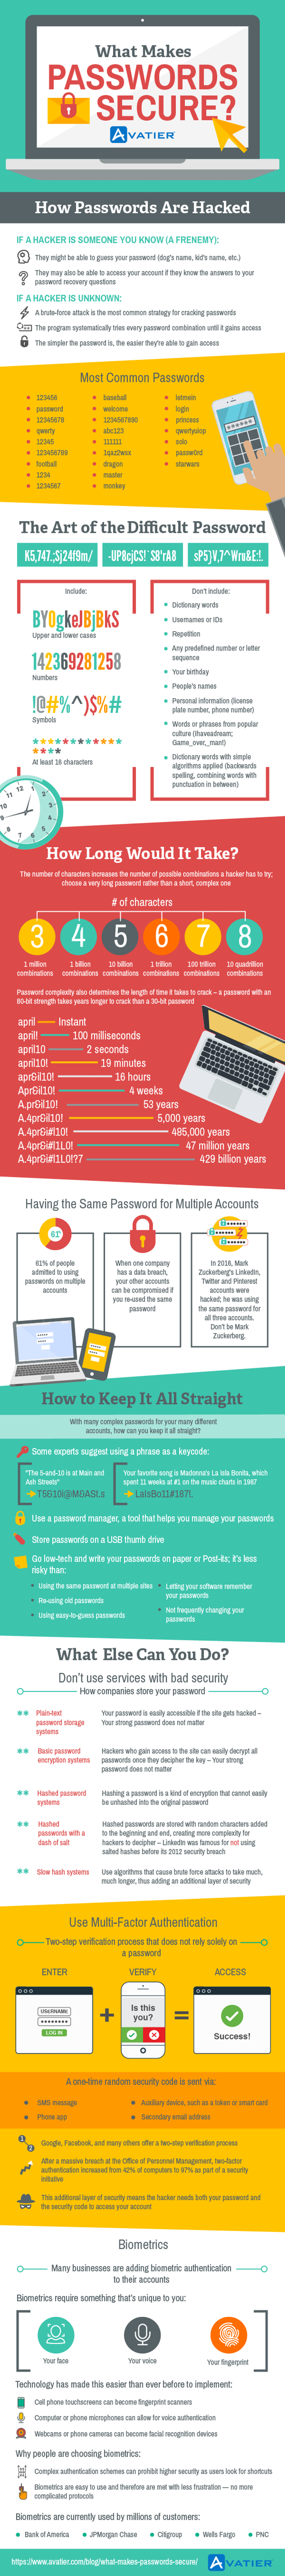 What Makes Passwords Secure? #Infographic